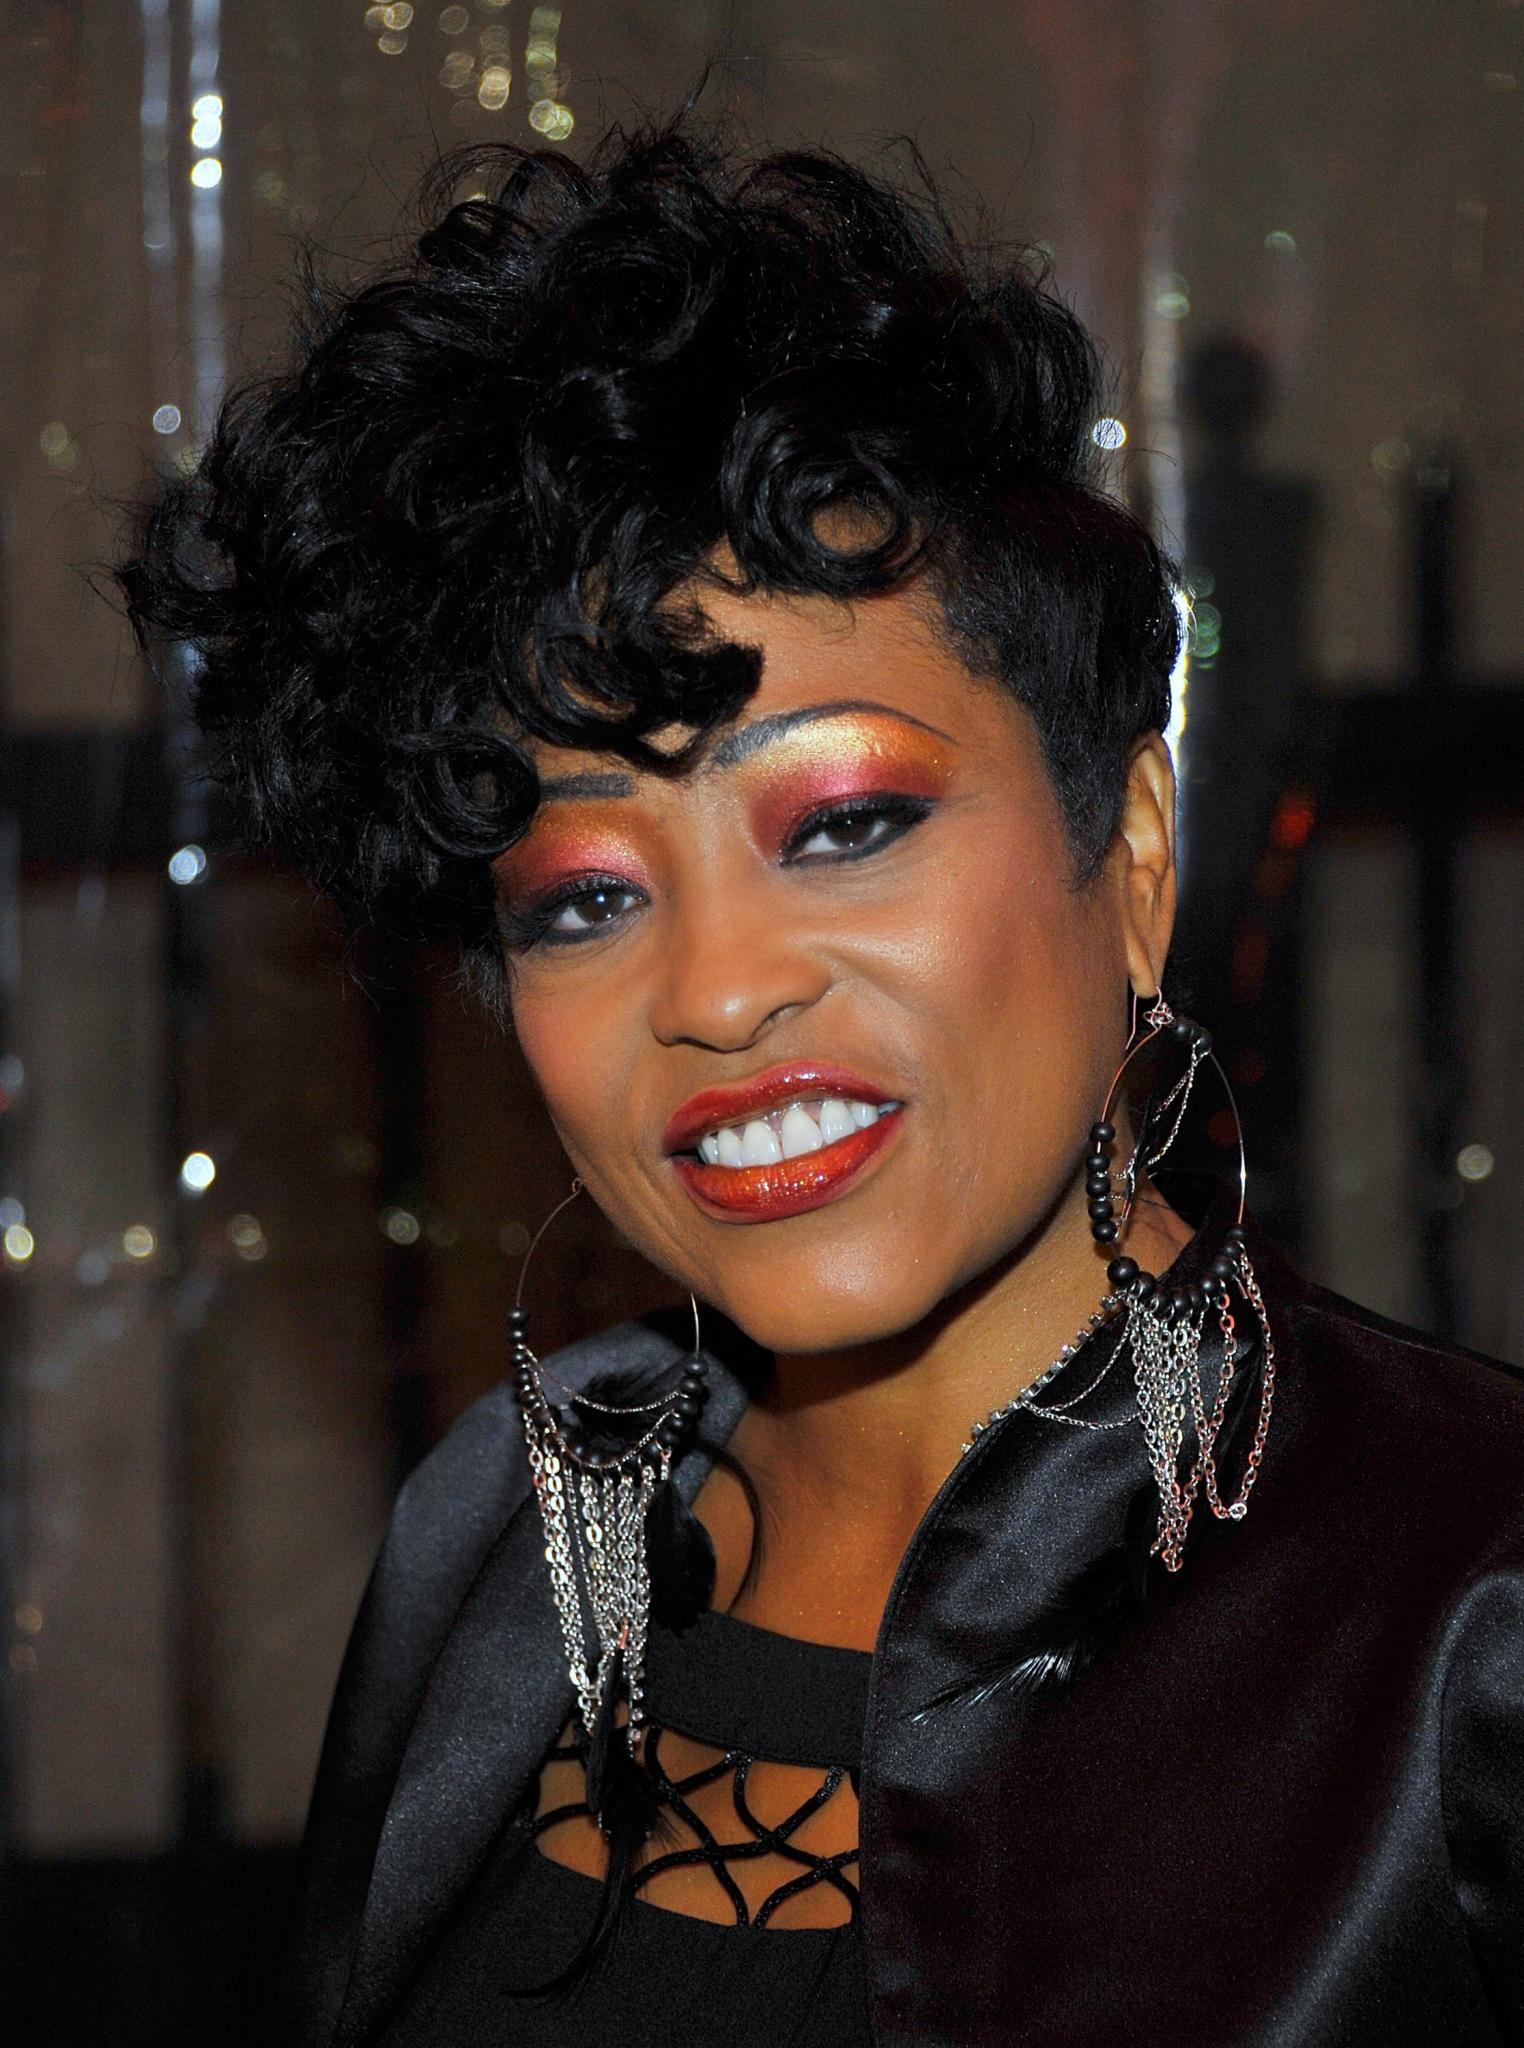 EXCLUSIVE: Miki Howard Denies Having a Son with Michael Jackson, Says 'I Am Brandon Howard's Father'